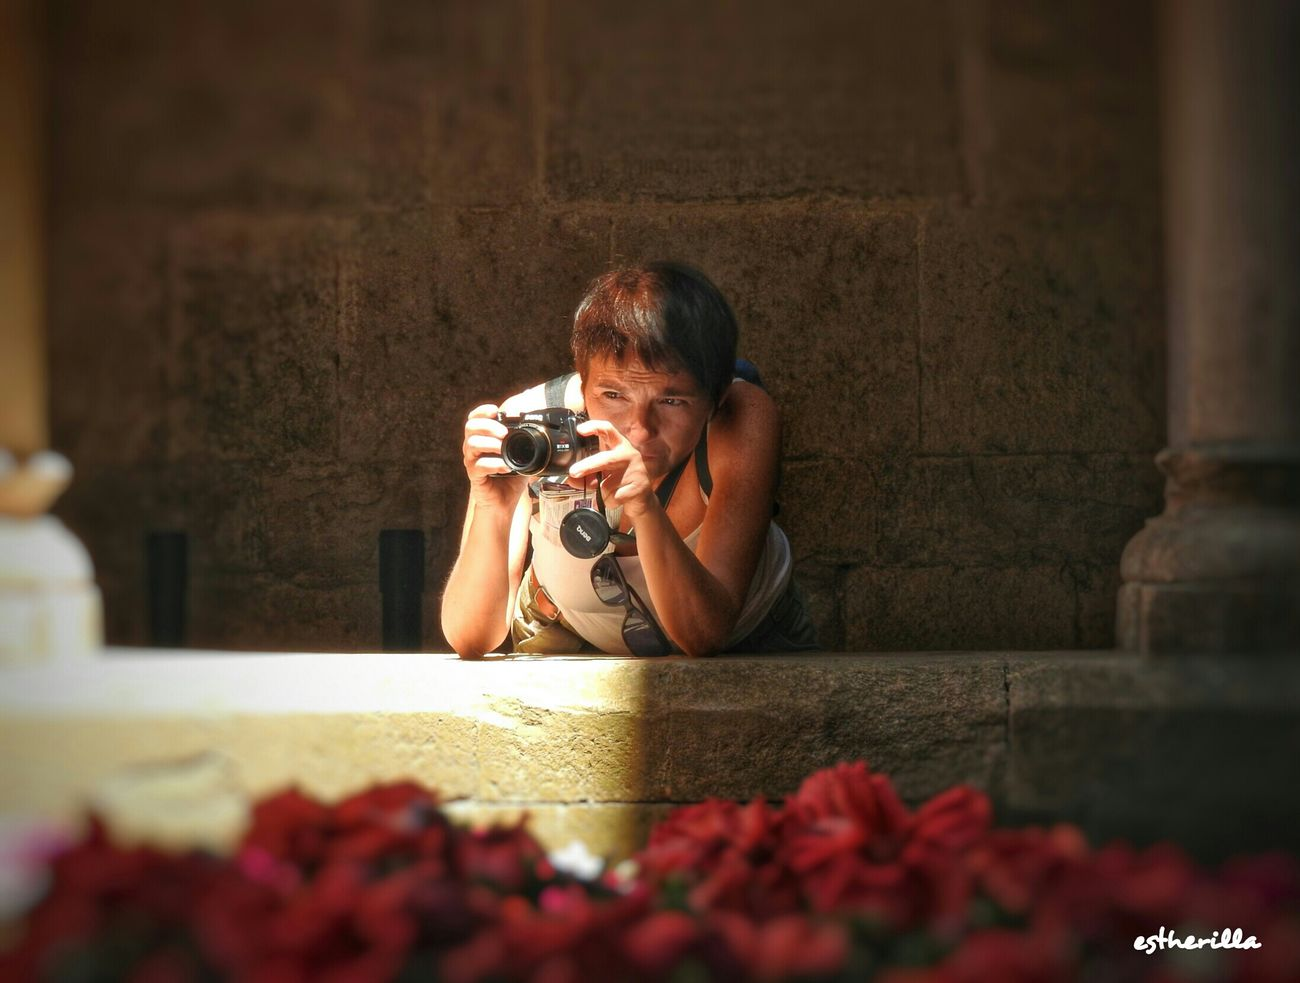 Girona en Tempsdeflors Light And Shadow Photographer Girona Gironatempsdeflors Girona Temps De Flors 2015 CazadorCazado Sound Of Life